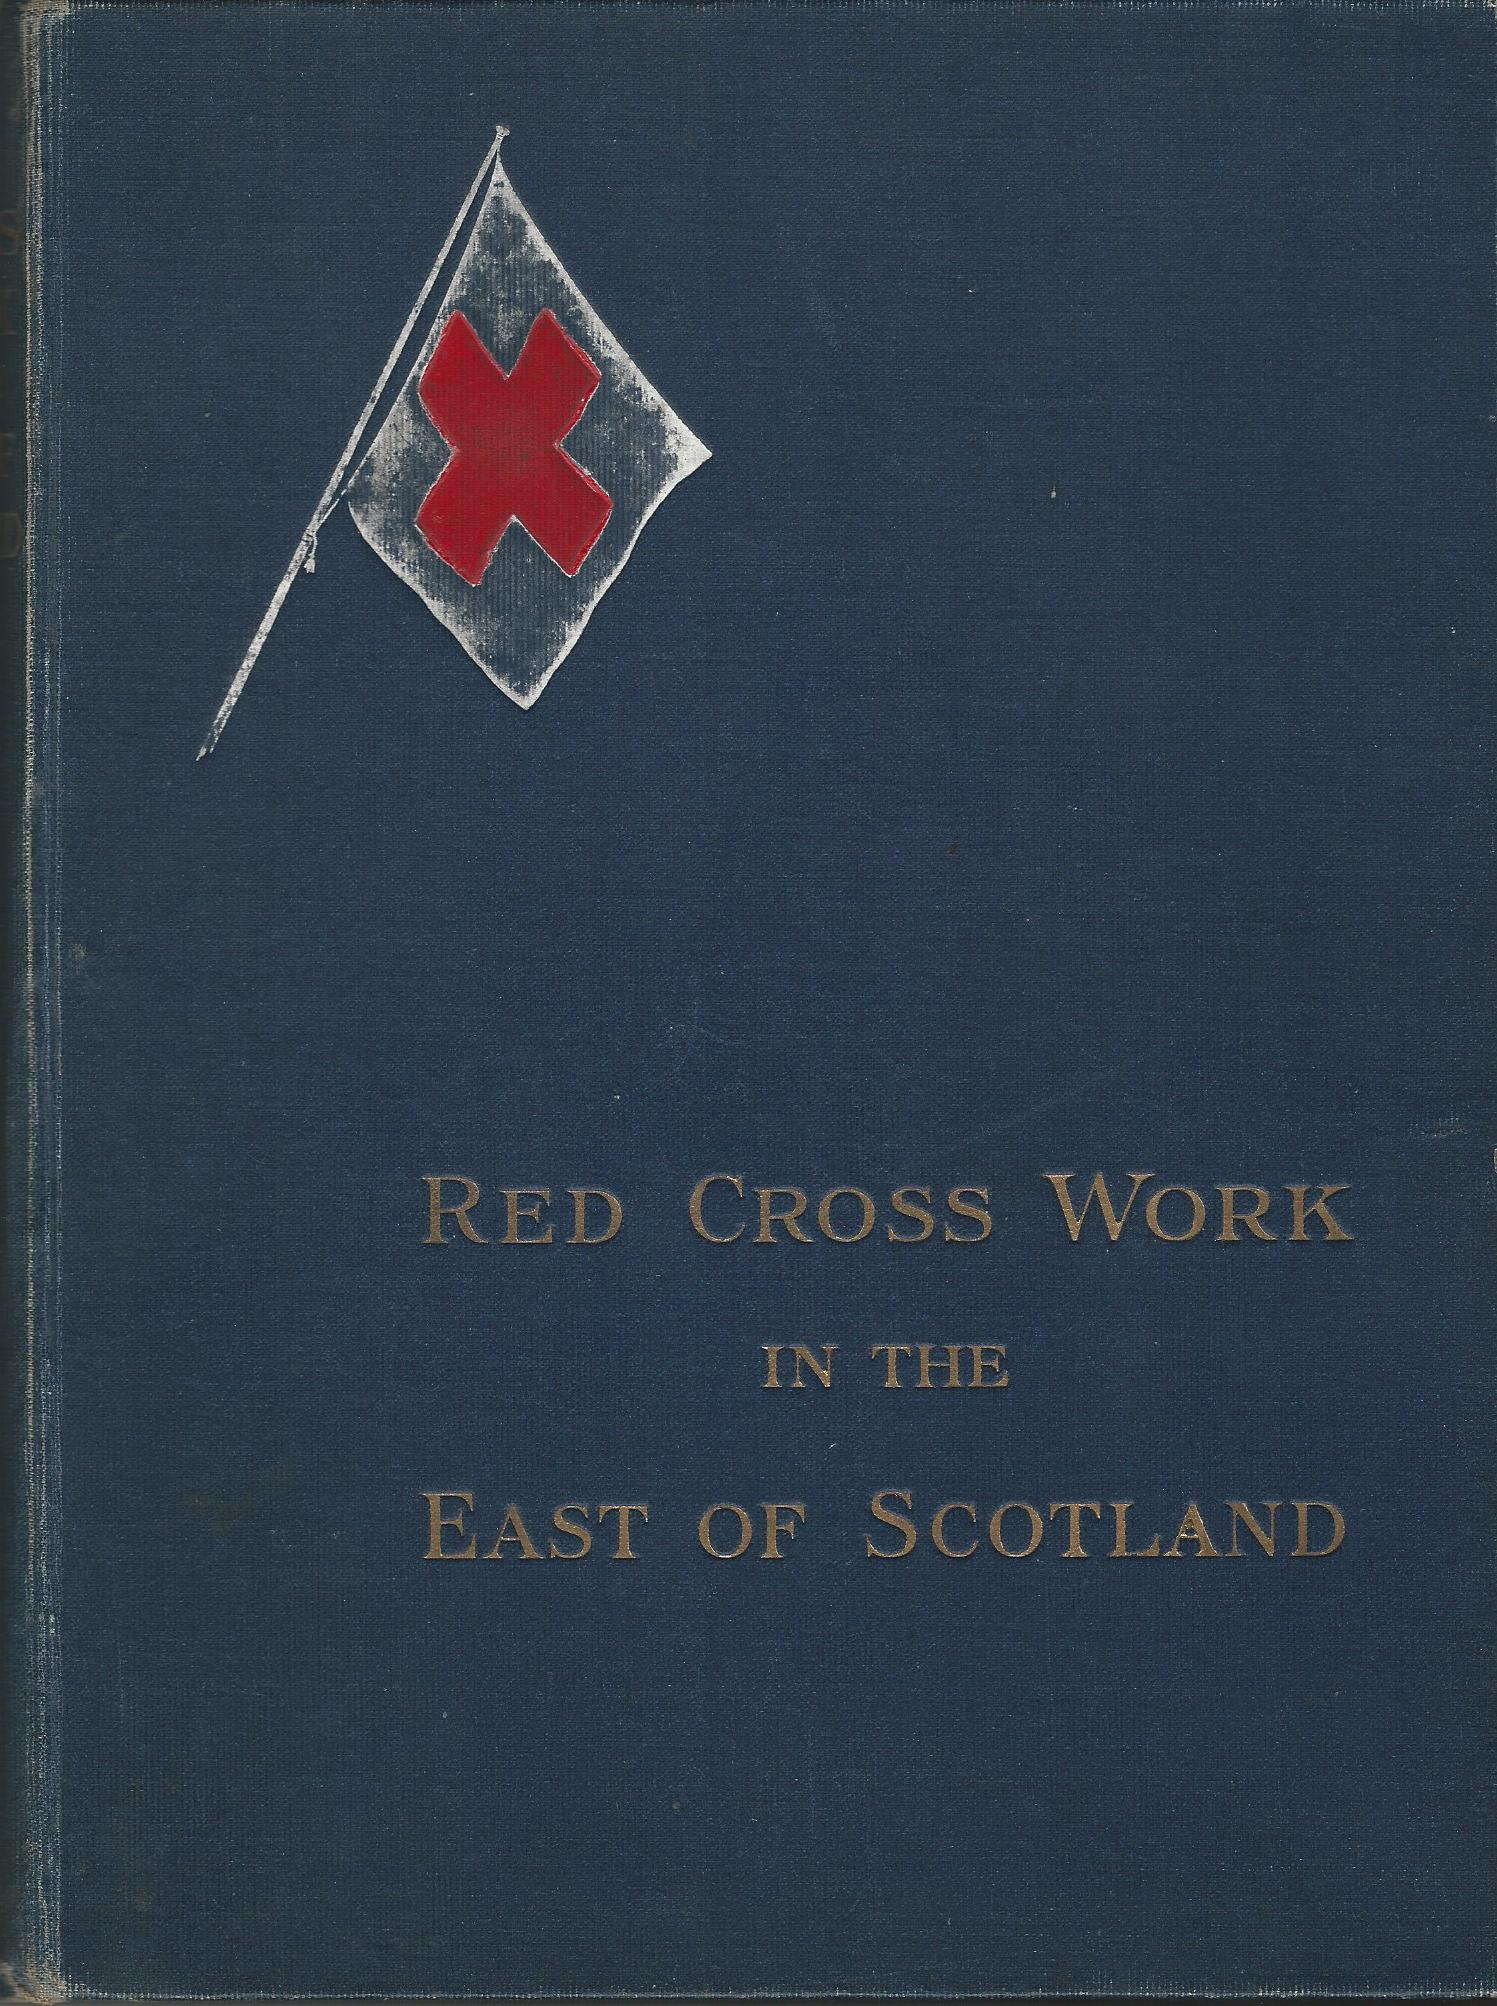 Image for An Illustrated Record of Red Cross Work in the East of Scotland.